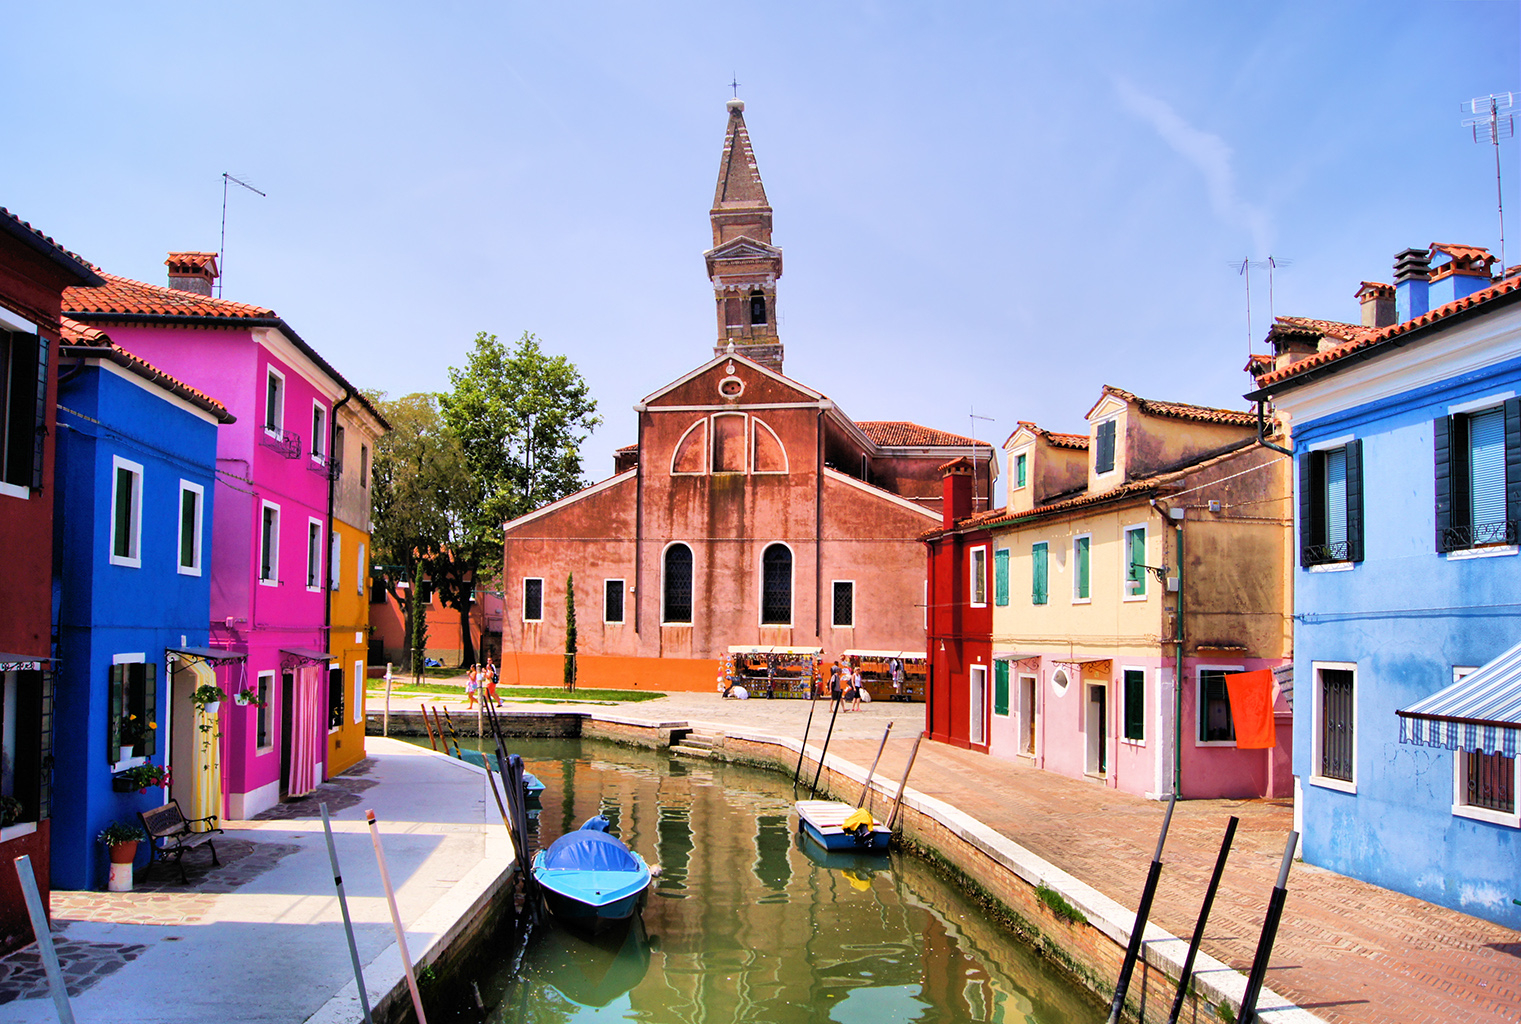 Visitors who stroll away from the main streets in Burano will discover a tranquil world of canals and fishing boats.— AFP pic